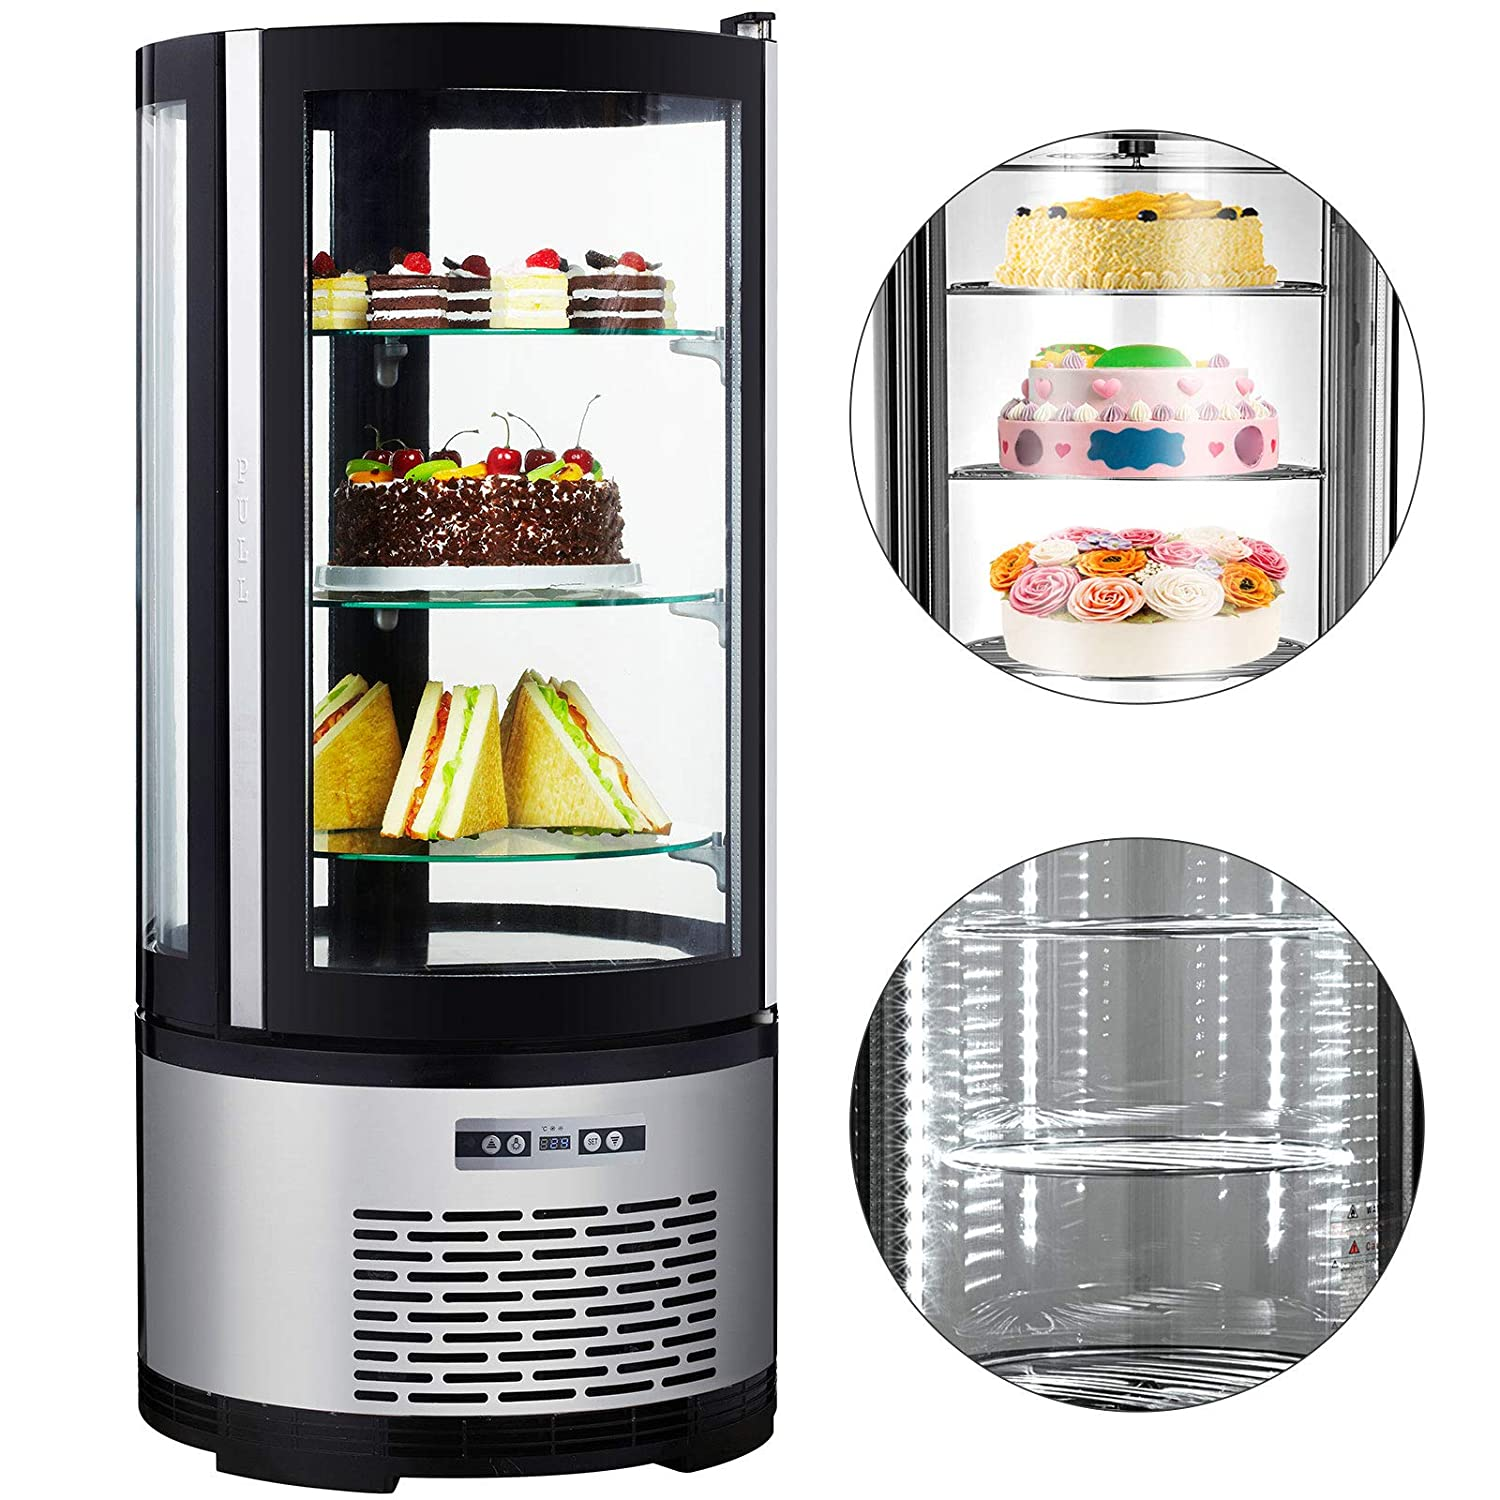 VBENLEM 3.5cu. ft.Commercial Curved Glass Display Refrigerator 100L Deli Bakery Display Case LED Lighting Countertop Cake Display Cooler for Cakes Dessert Pies Used to Bakery Coffee Shop Cake Shop